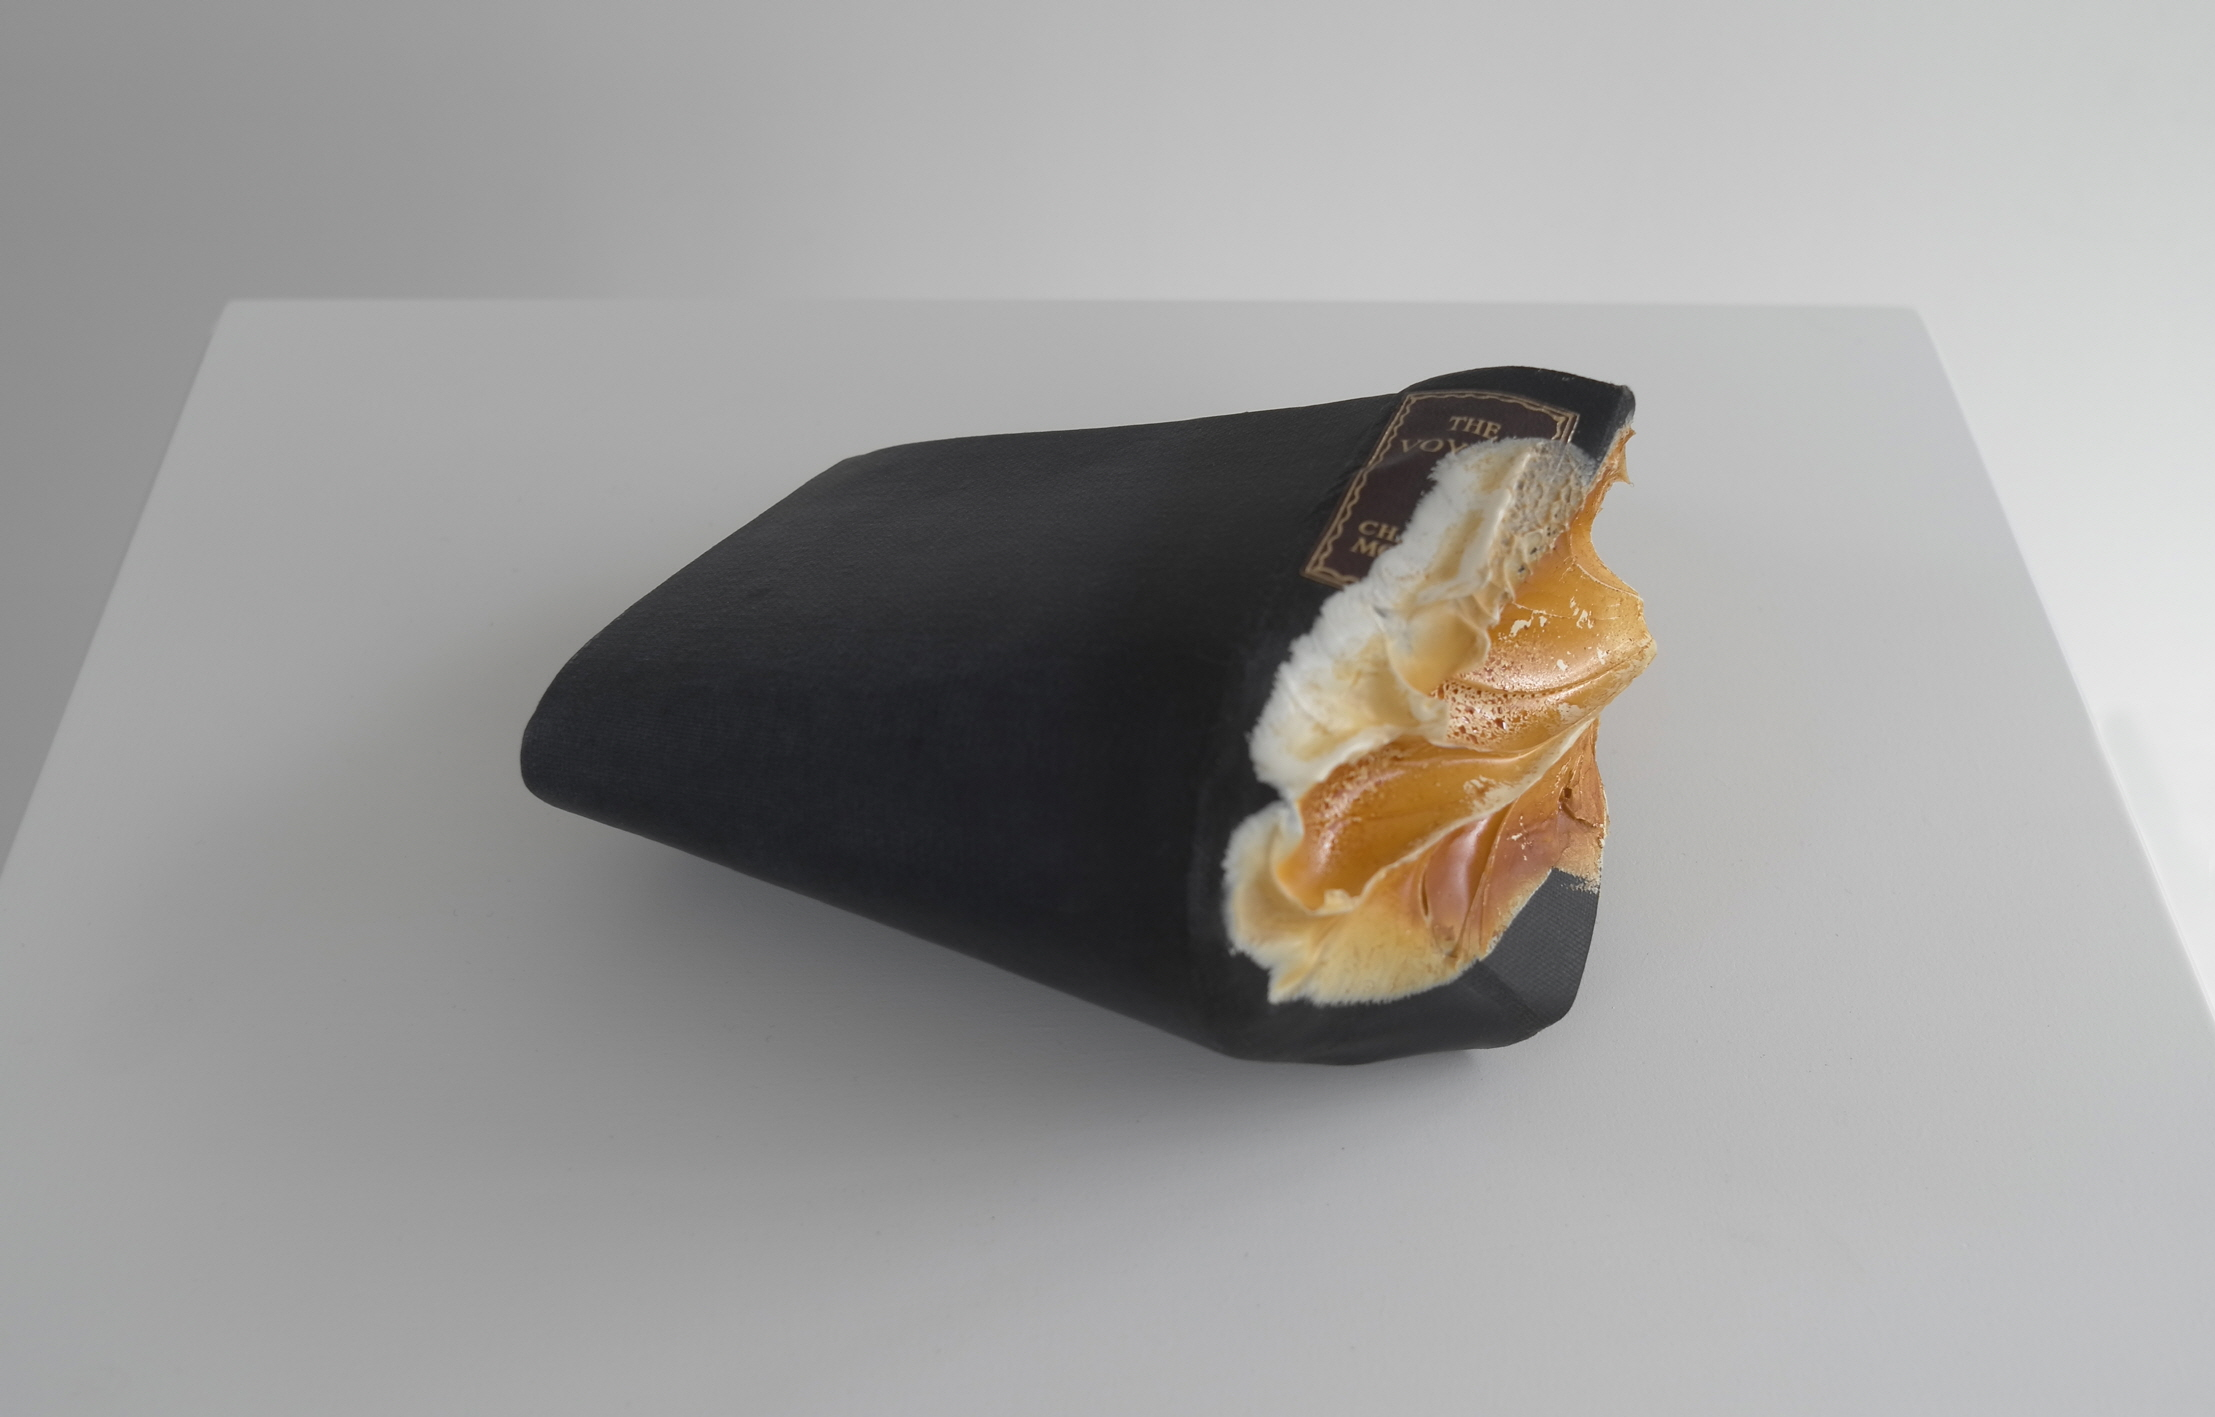 Jonathan Callan, The Voyage, 2001, Paper and Silicone Rubber, 19 x 21 x 10cm